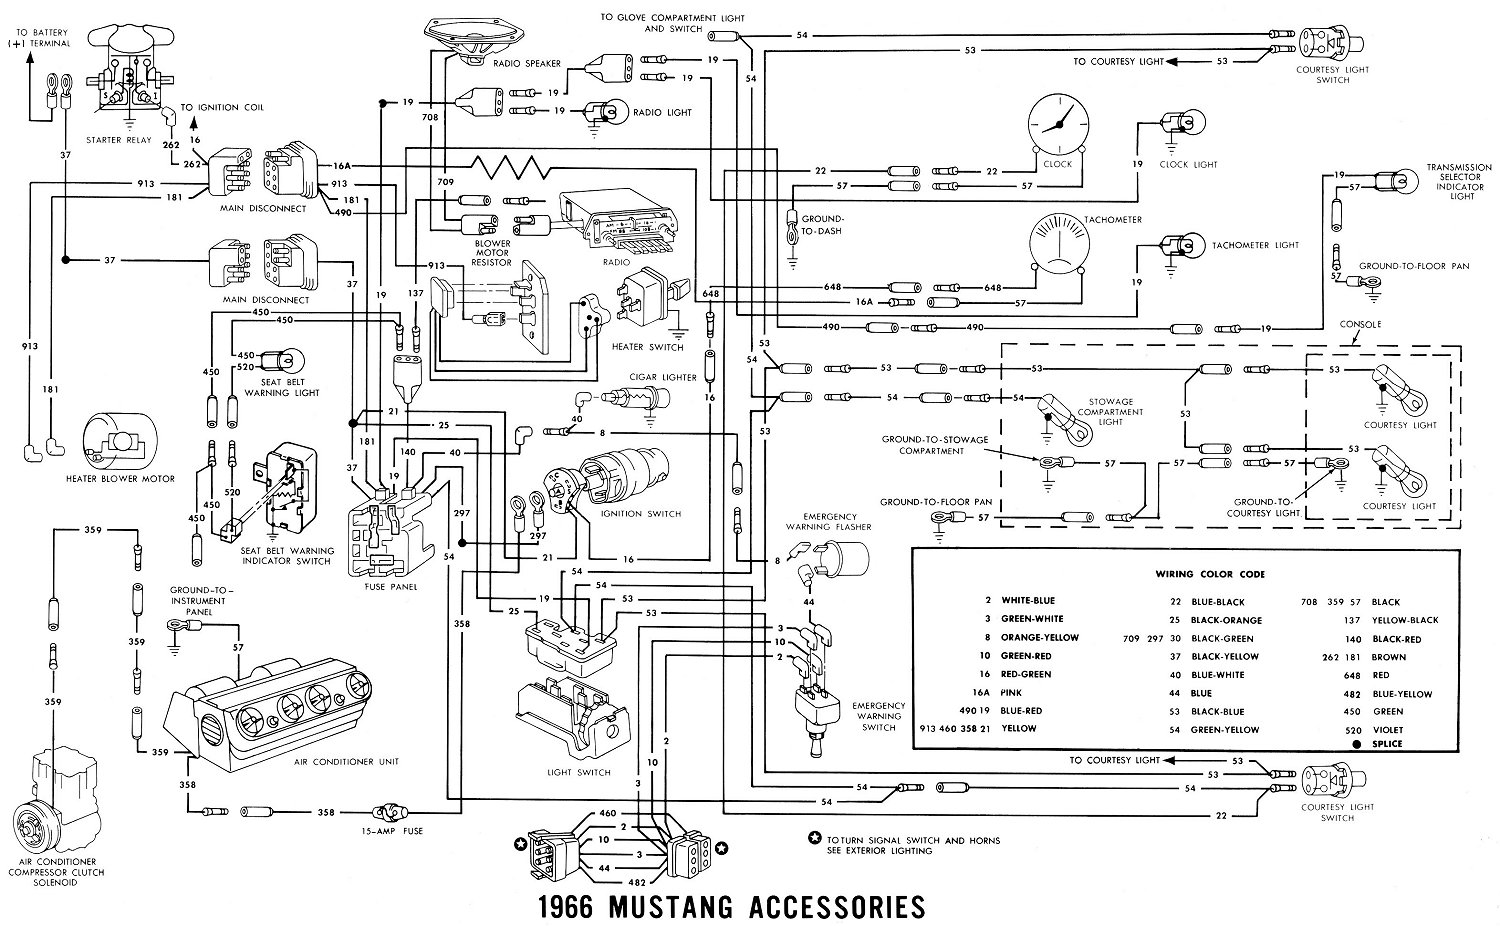 66acces1 1966 mustang wiring diagrams average joe restoration 66 mustang wiring harness at virtualis.co